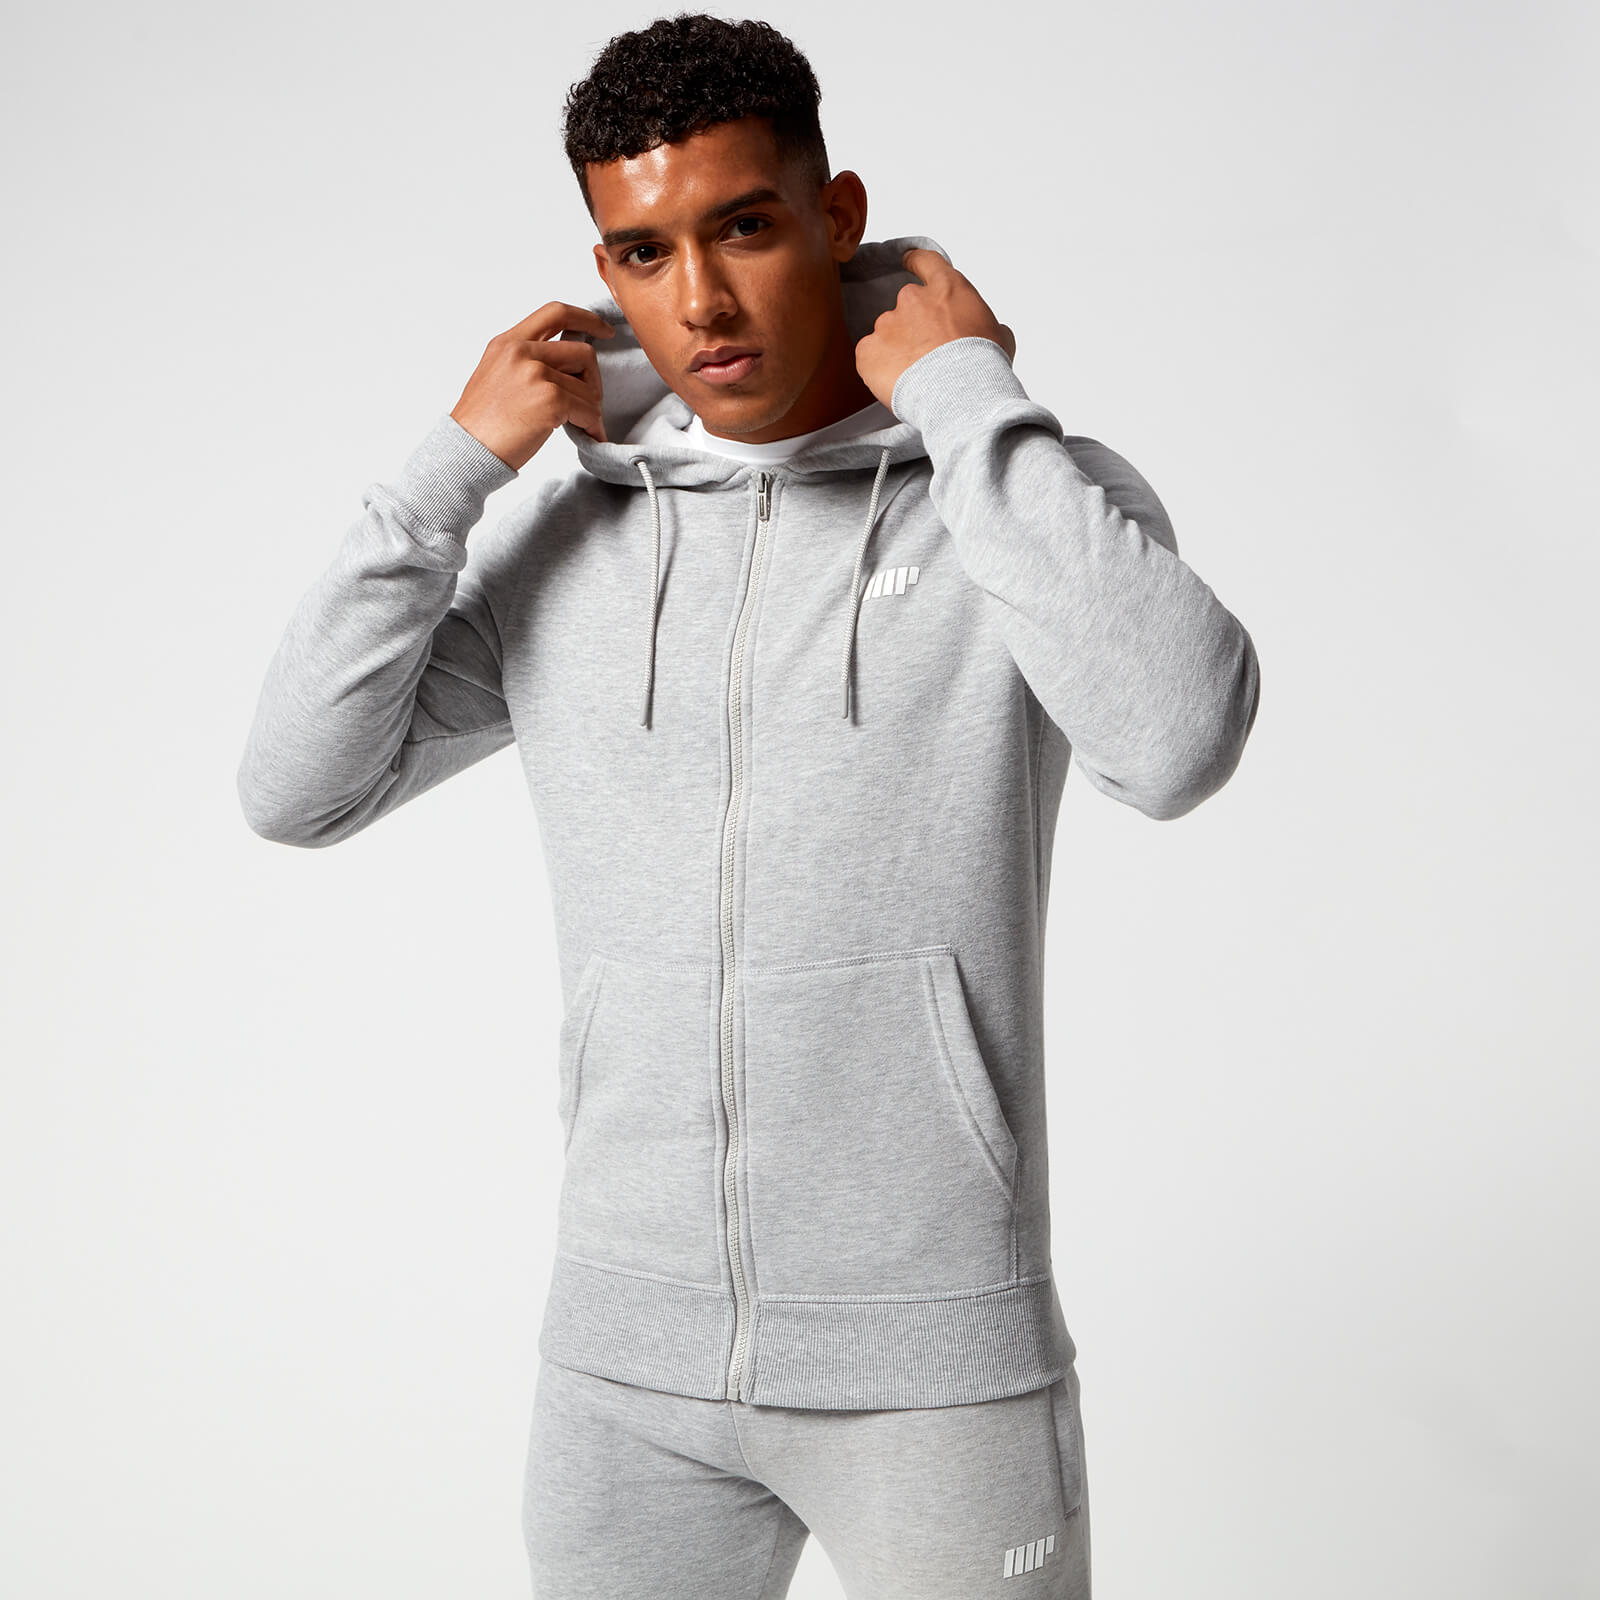 Myprotein Tru-Fit Zip Up Hoodie - Grey Marl - XS